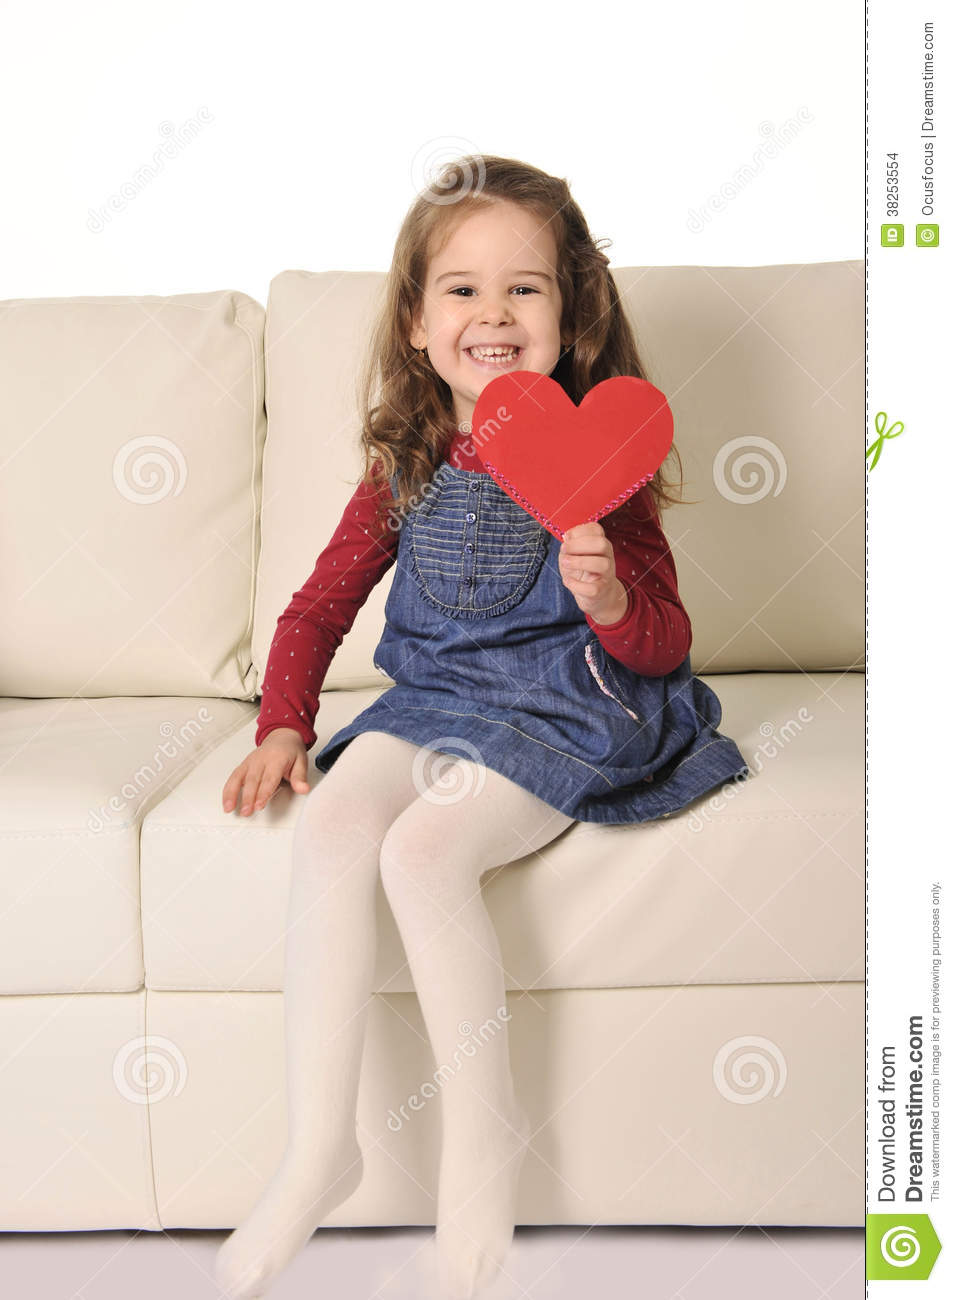 Little Girl Sitting On Couch Holding Red Heart Shape